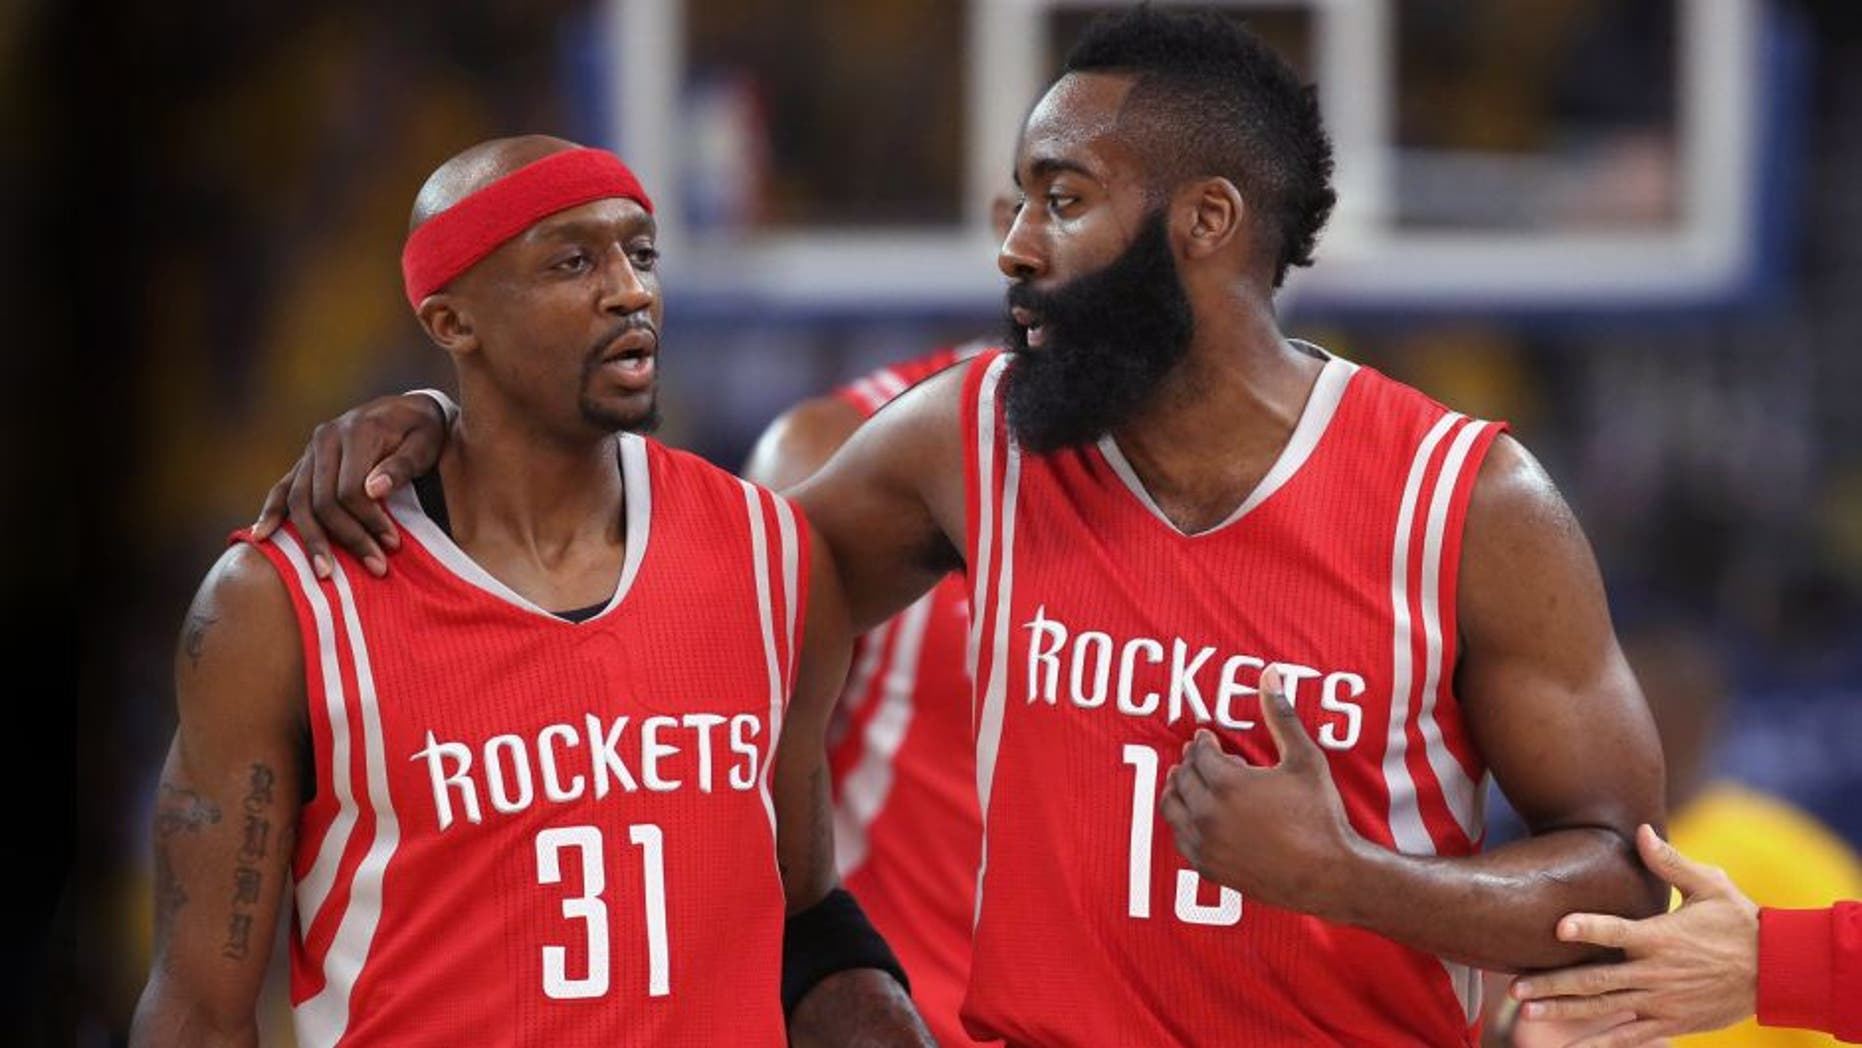 OAKLAND, CA - MAY 21: Jason Terry #31 and James Harden #13 of the Houston Rockets react after a play in the first quarter against the Golden State Warriors during game two of the Western Conference Finals of the 2015 NBA PLayoffs at ORACLE Arena on May 21, 2015 in Oakland, California. NOTE TO USER: User expressly acknowledges and agrees that, by downloading and or using this photograph, user is consenting to the terms and conditions of Getty Images License Agreement. (Photo by Ezra Shaw/Getty Images)